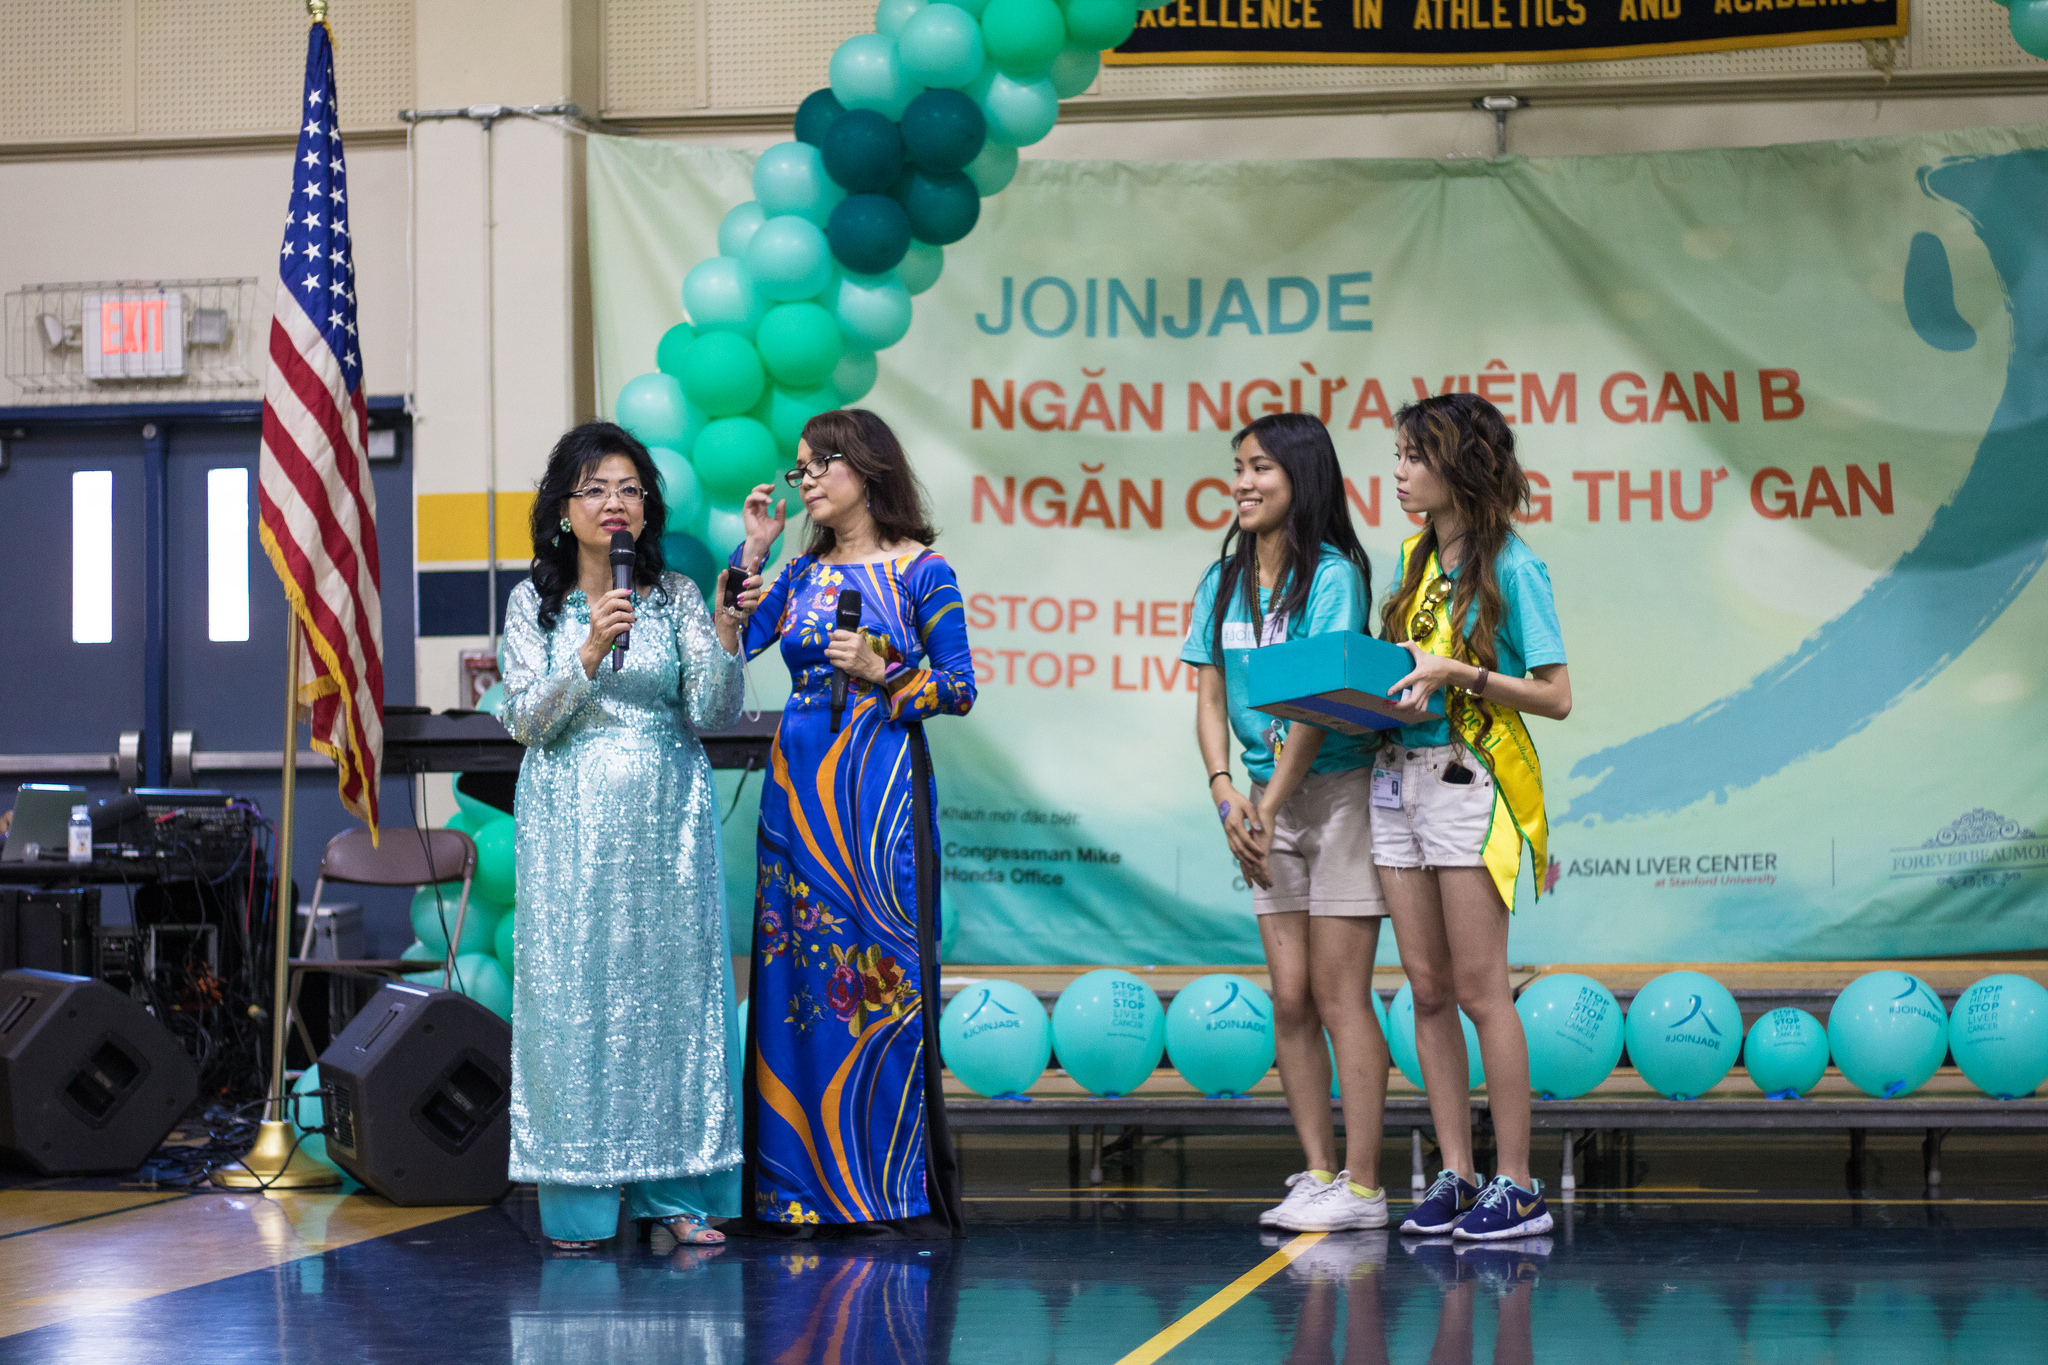 Vietnamese Concert and Health Fair